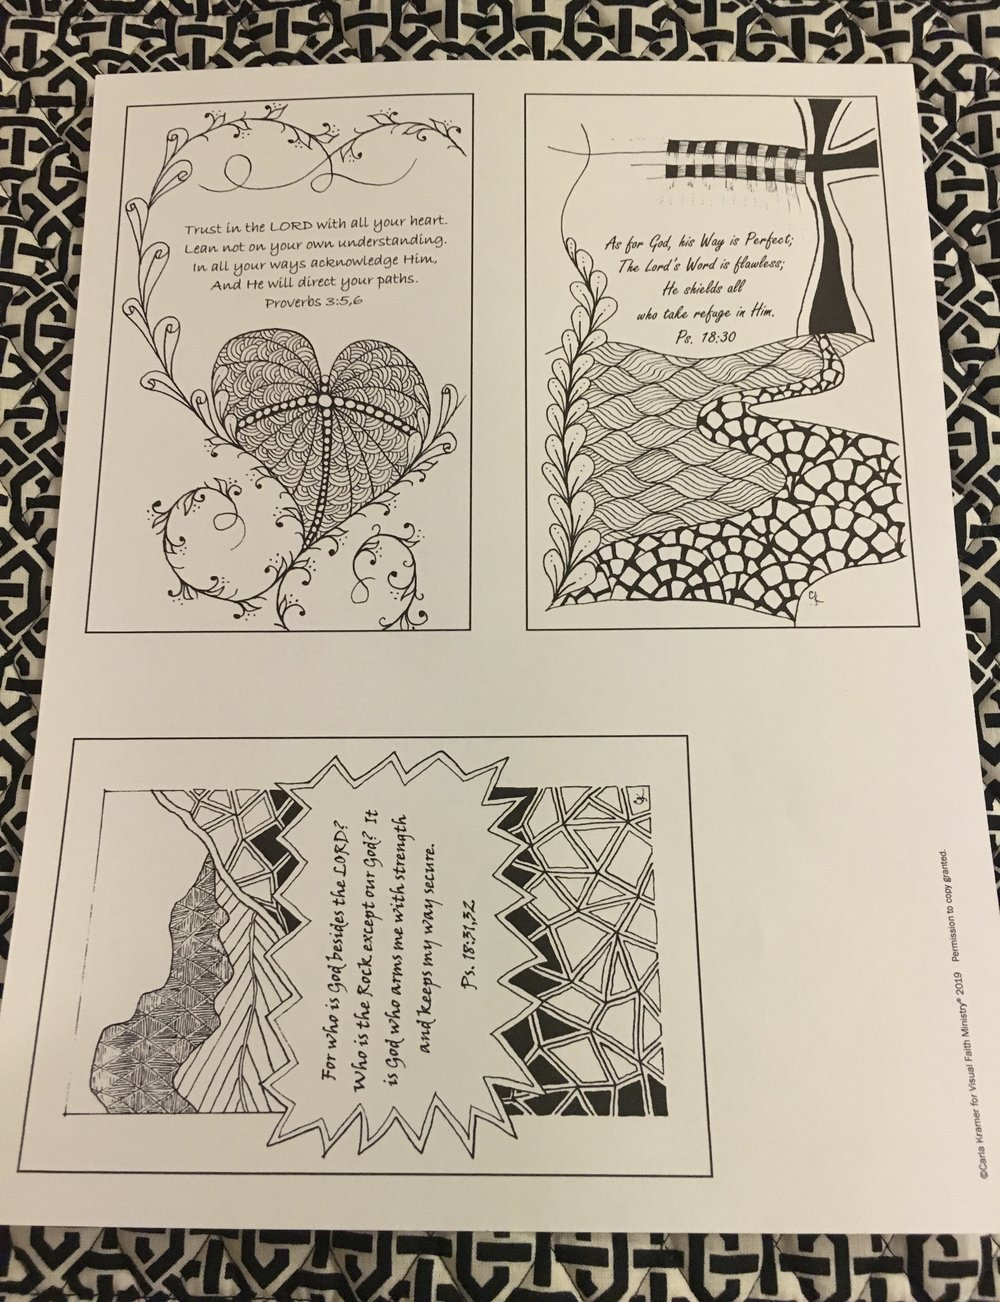 Carla creates tangle Bible verse cards that we are calling Versicles for Visual Faith Ministry. A Versicle is a short sentence or verse said or sung- with a following response. These prayer cards are the invitation and your time in praying over the verse and /or coloring - is the response.